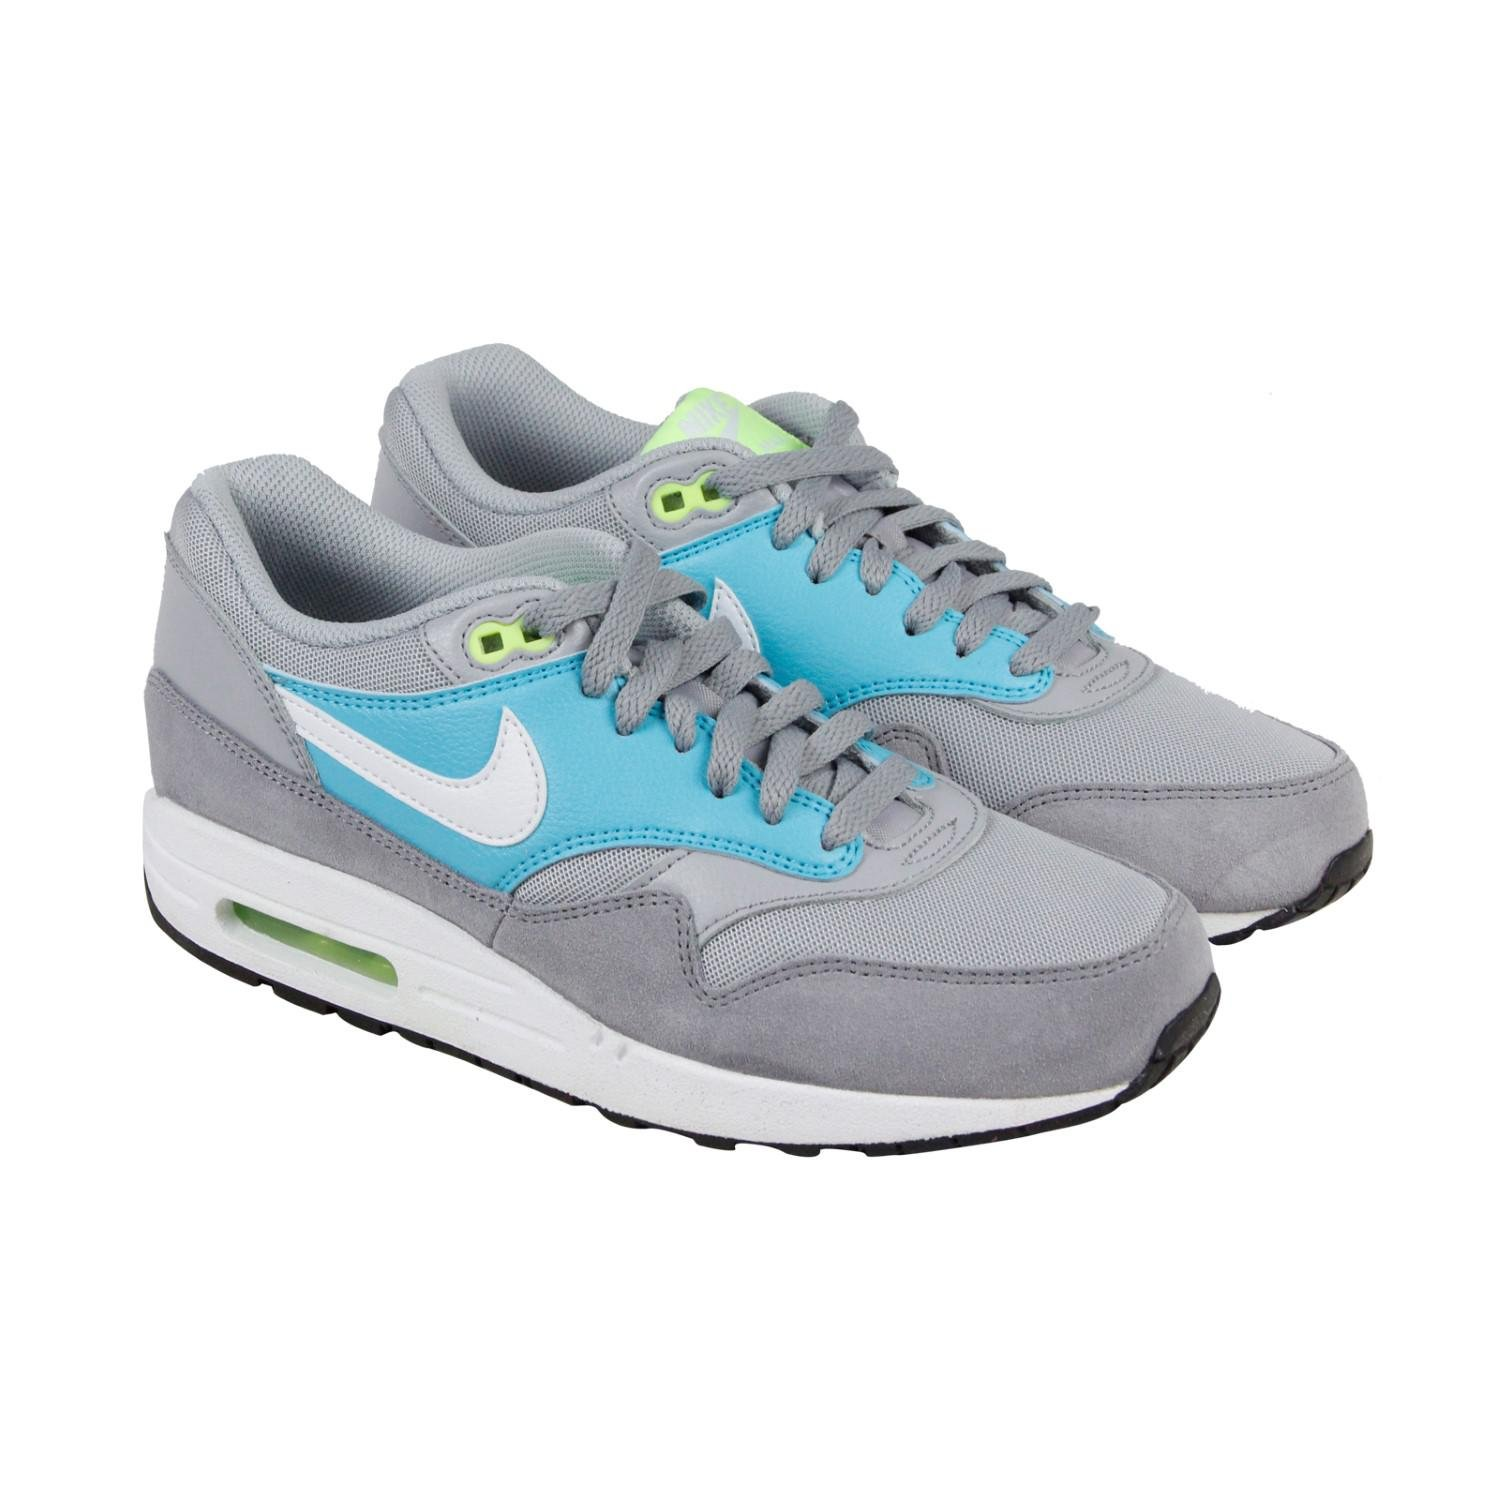 nike air max ltd 2 pure platinum white stealth plane